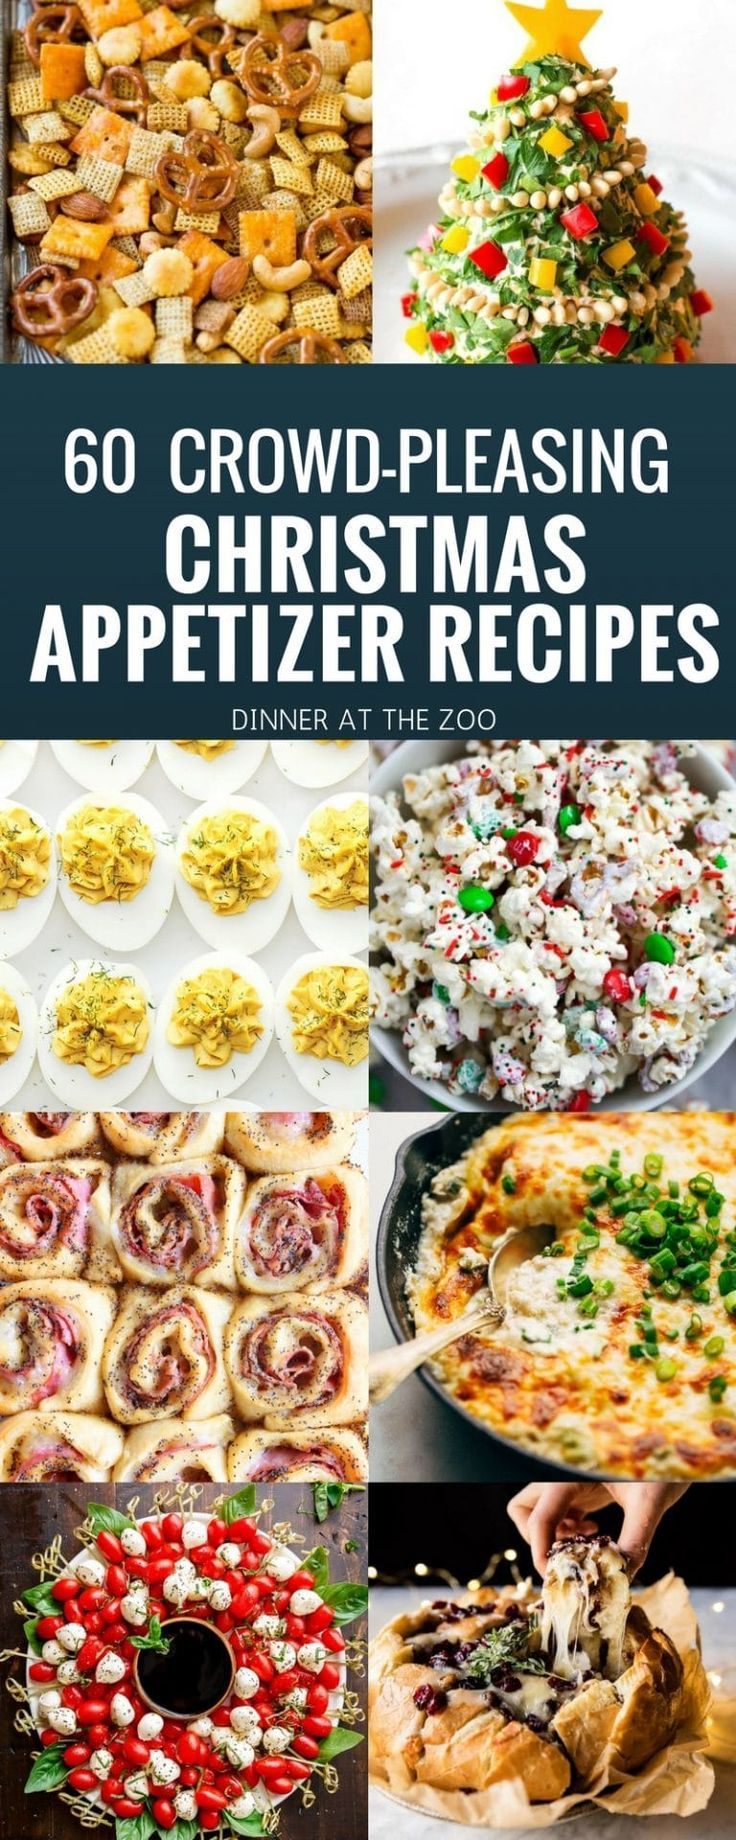 Christmas appetizer recipes hot appetizers cold appetizers christmas appetizer recipes hot appetizers cold appetizers holiday appetizers christmas foodschristmas evechristmas party forumfinder Images